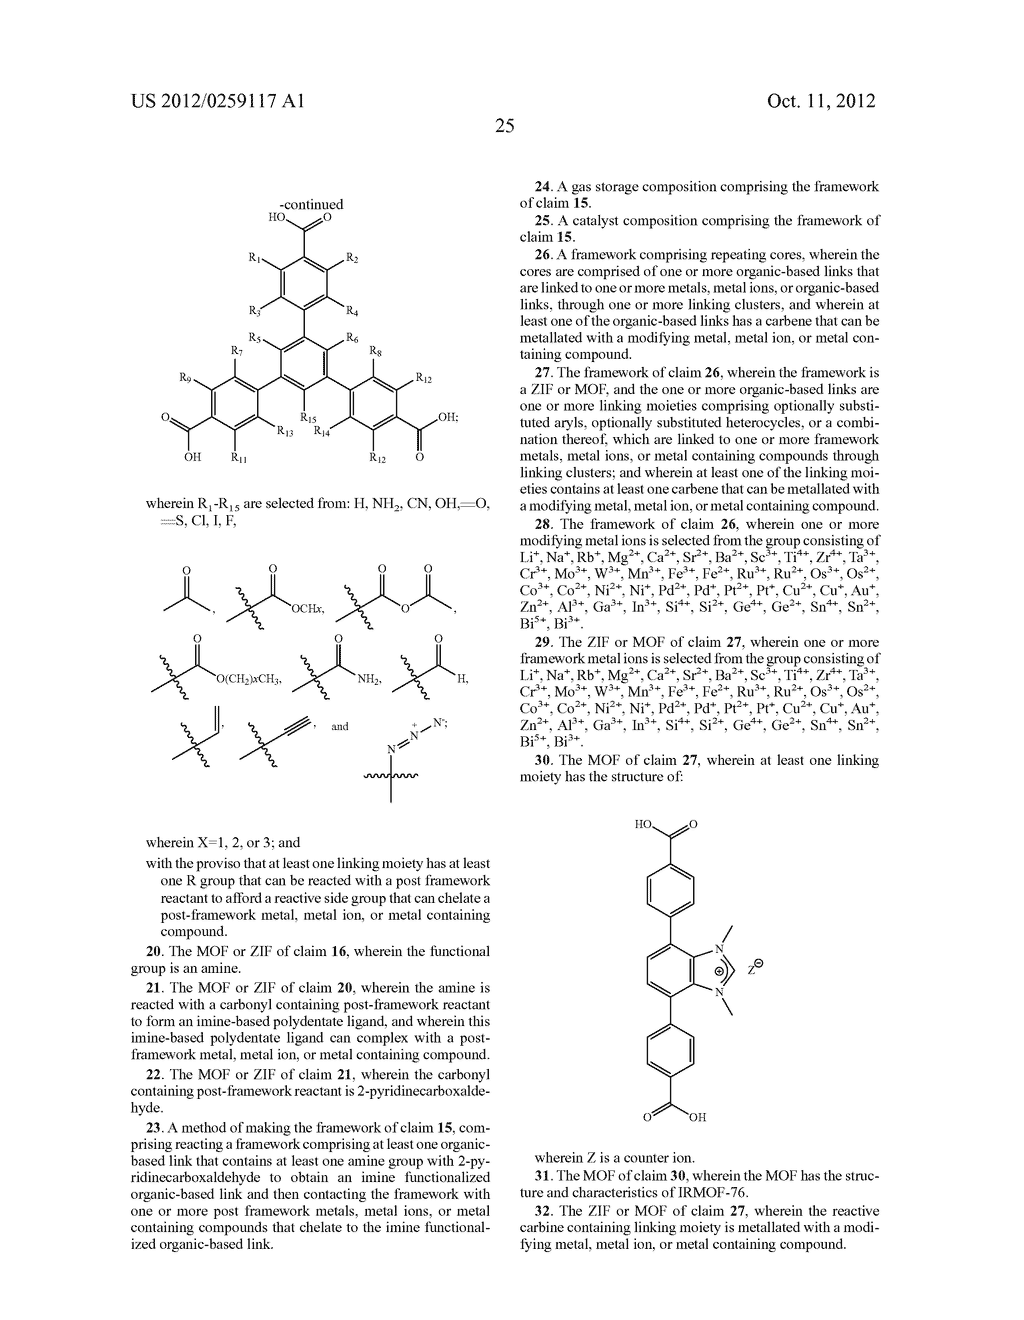 ORGANO-METALLIC FRAMEWORKS AND METHODS OF MAKING SAME - diagram, schematic, and image 44